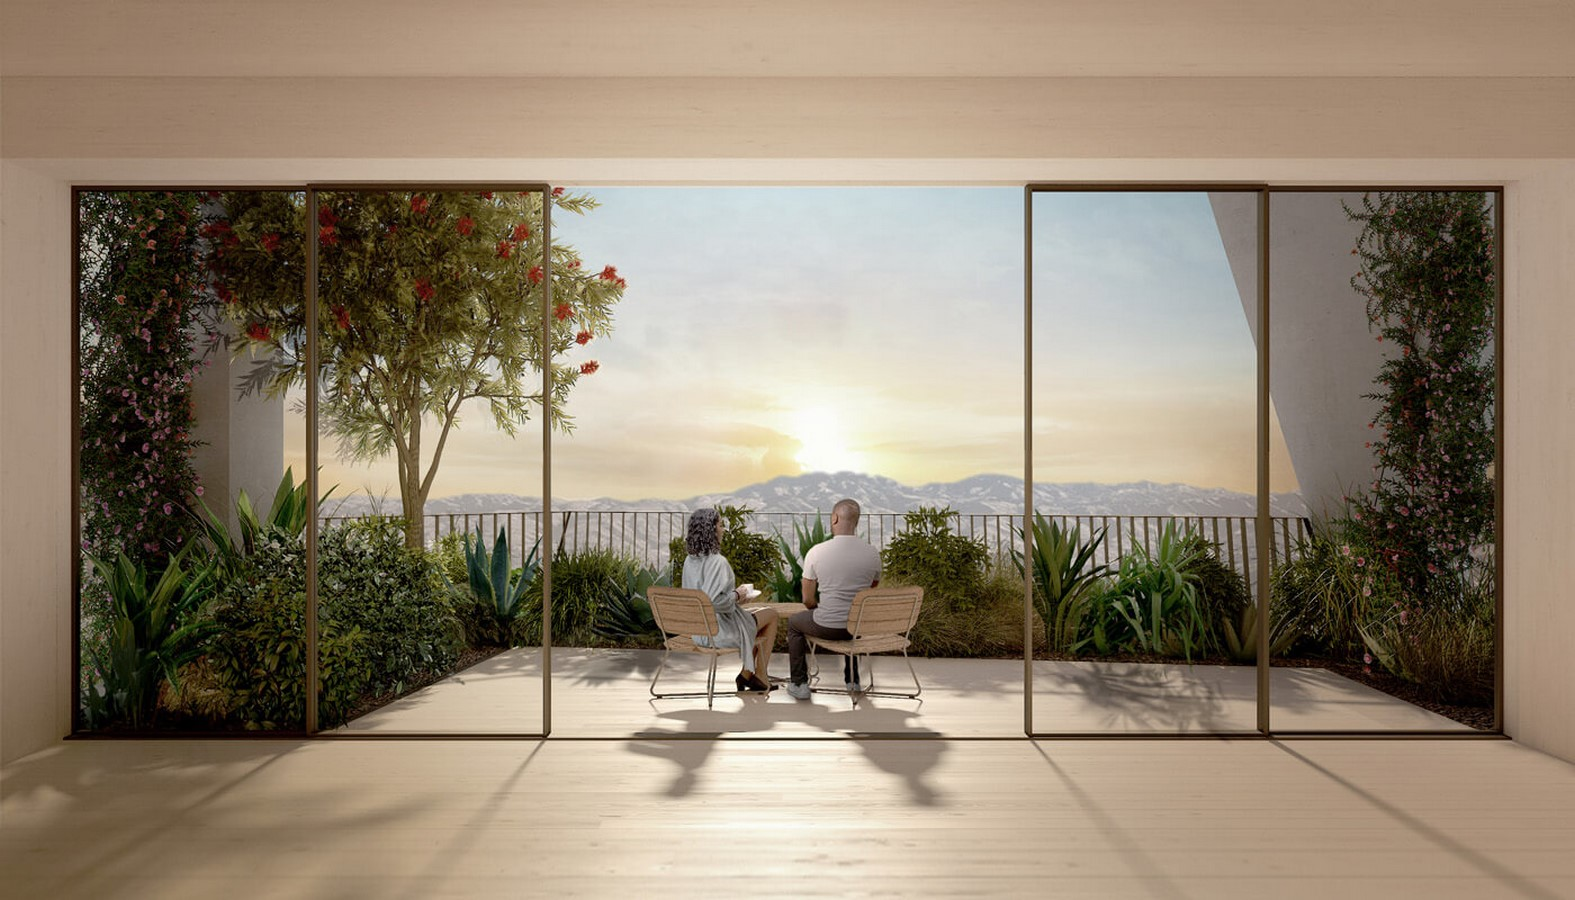 """Company to """"reimagine the way we build our homes"""" launched by Bjarke Ingels - Sheet3"""